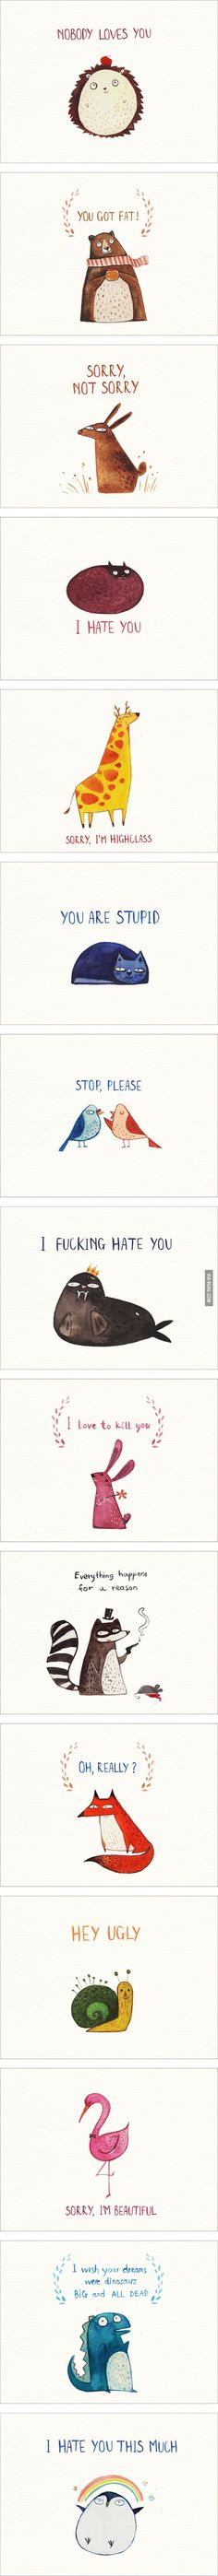 Why would someone spend their time, money or just attention to send these cute (but offensive) postcards to people they hate? O.o  15 Cute Postcards For Your Enemies